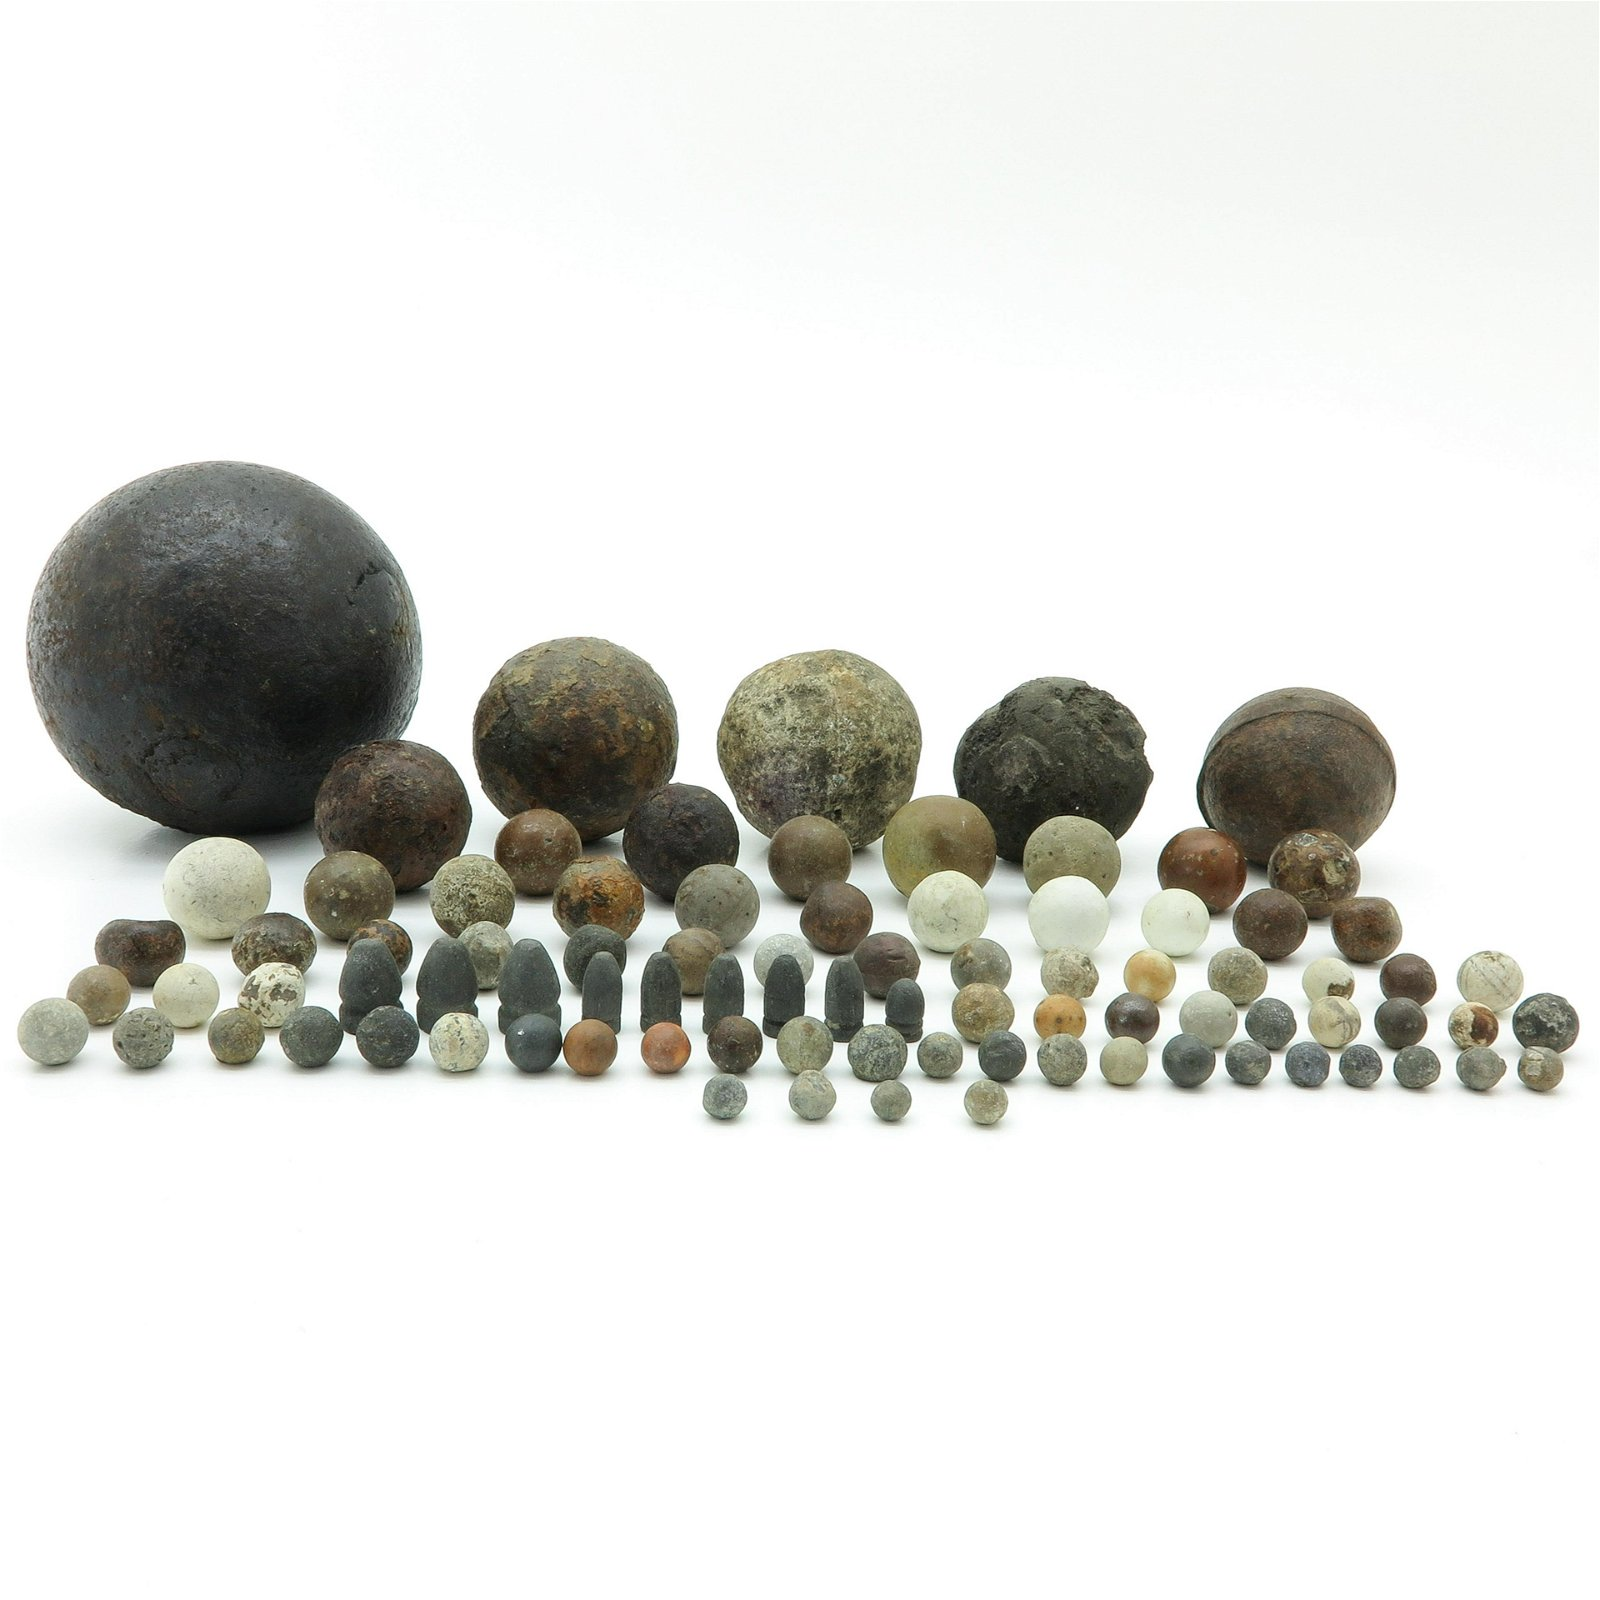 A Diverse Collection of Antique Iron Bullets